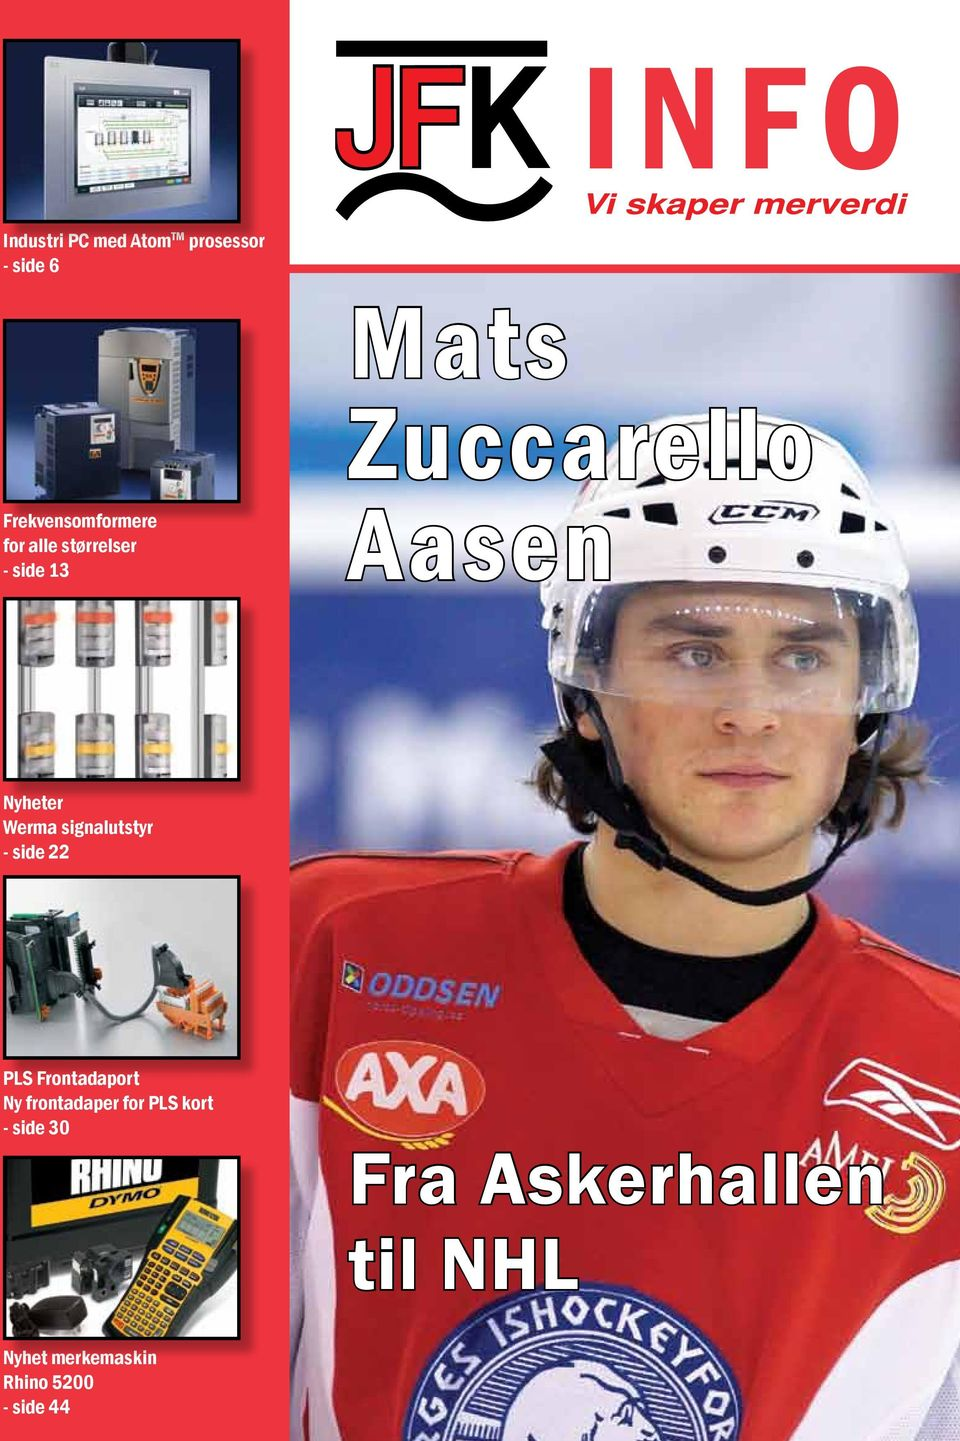 Nyheter Werma signalutstyr - side 22 PLS Frontadaport Ny frontadaper for